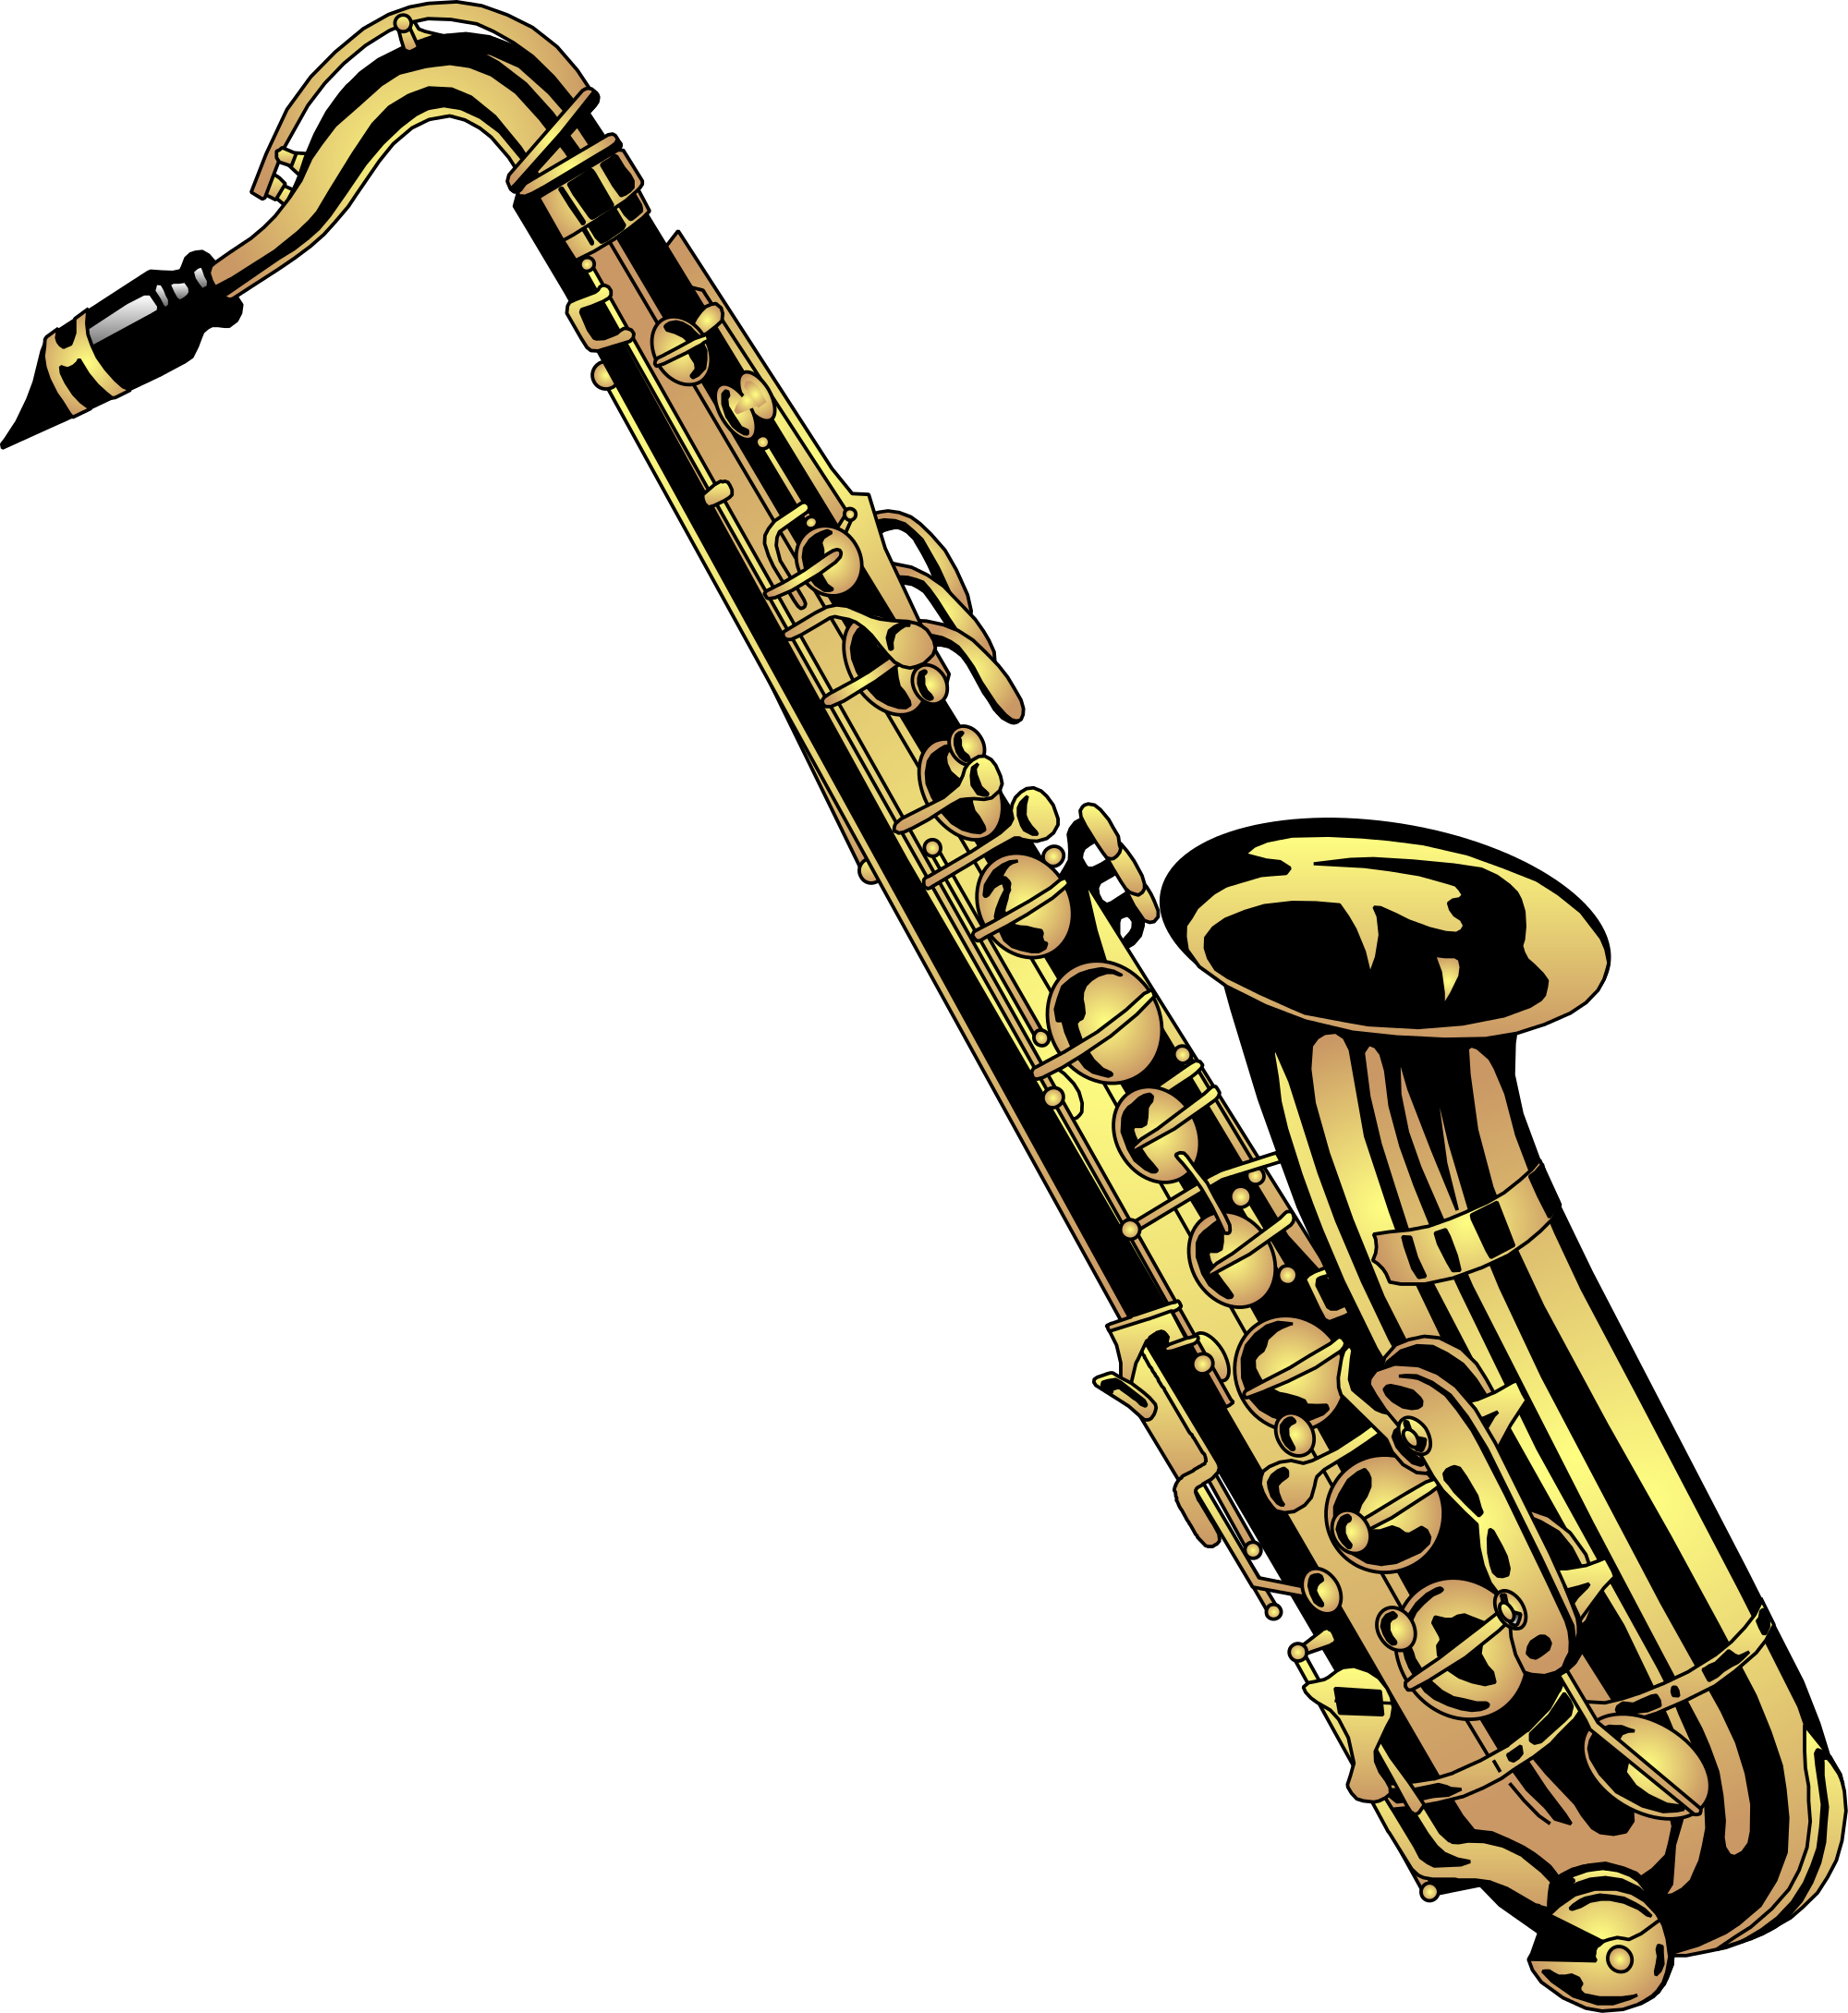 Clarinet clipart svg. File saxophone wikimedia commons